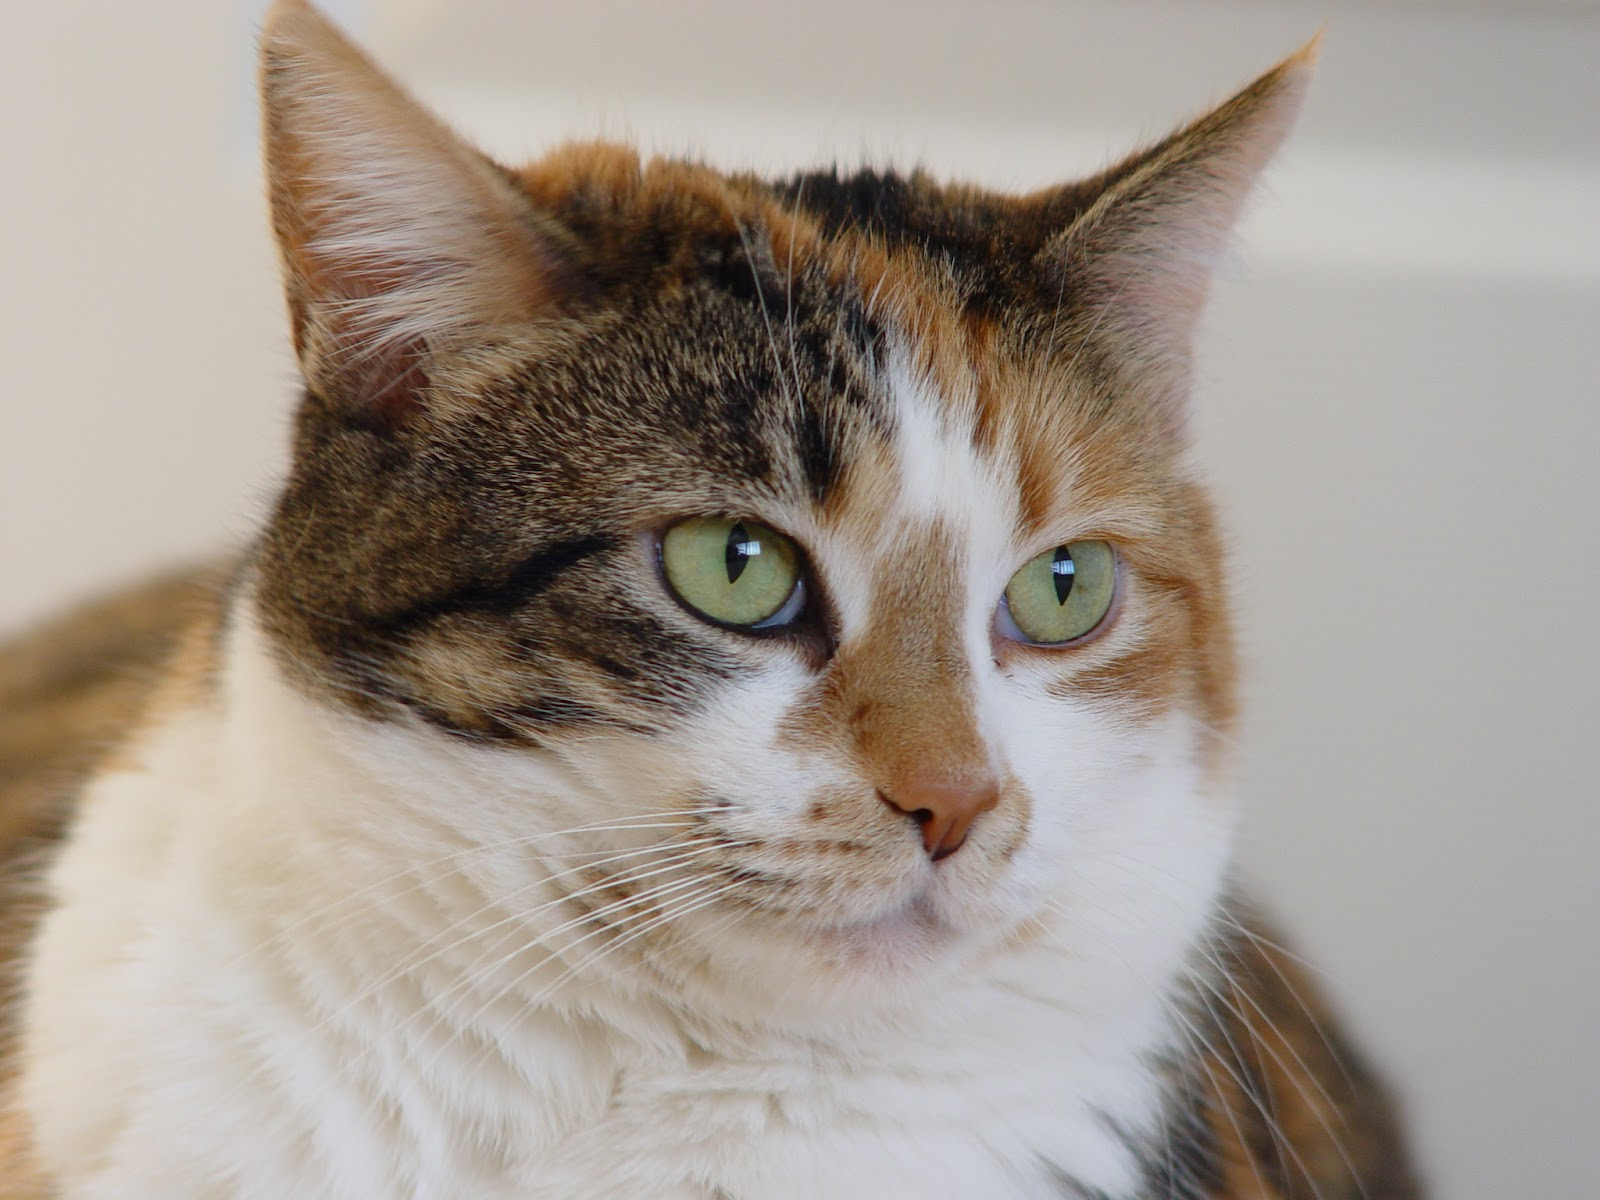 Calico_tabby_cat_-_Savannah.jpg